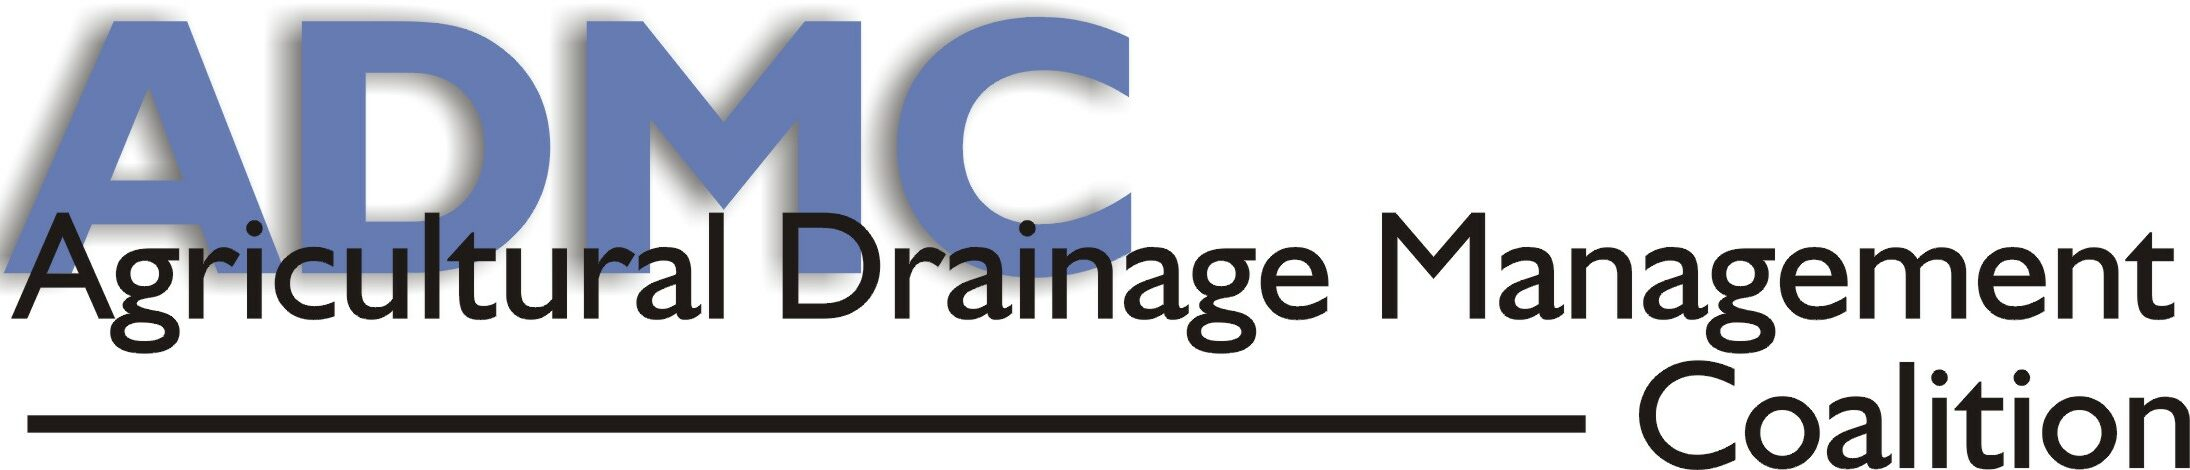 Agricultural Drainage Management Coalition